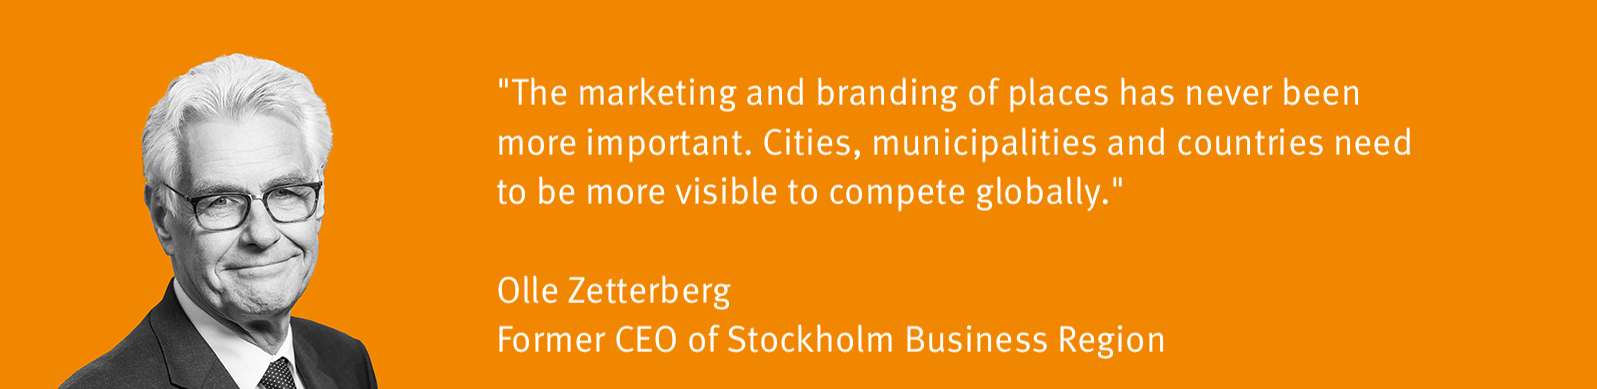 place-branding-liverpool-olle-zetterberg-stockholm -quote rv2